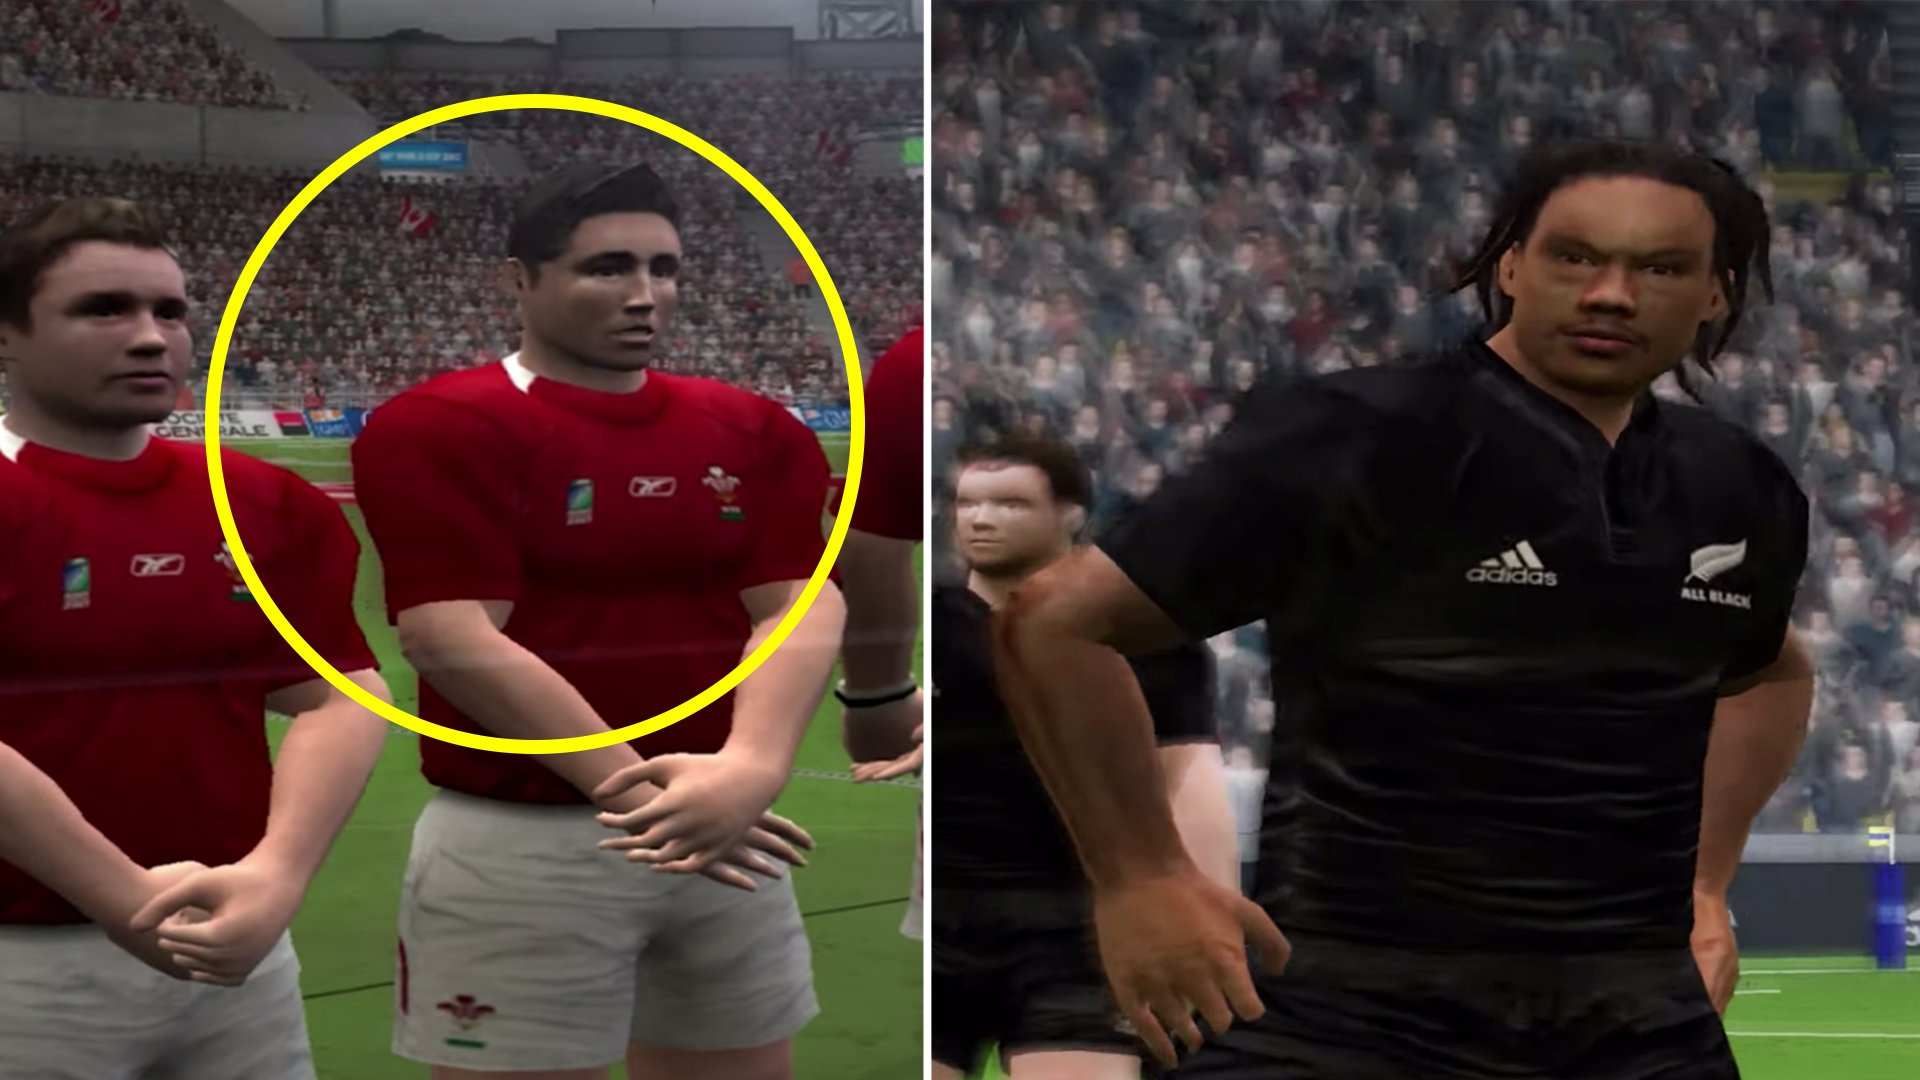 Rugby 08 is sadly still the best rugby game on the market 12 years after release